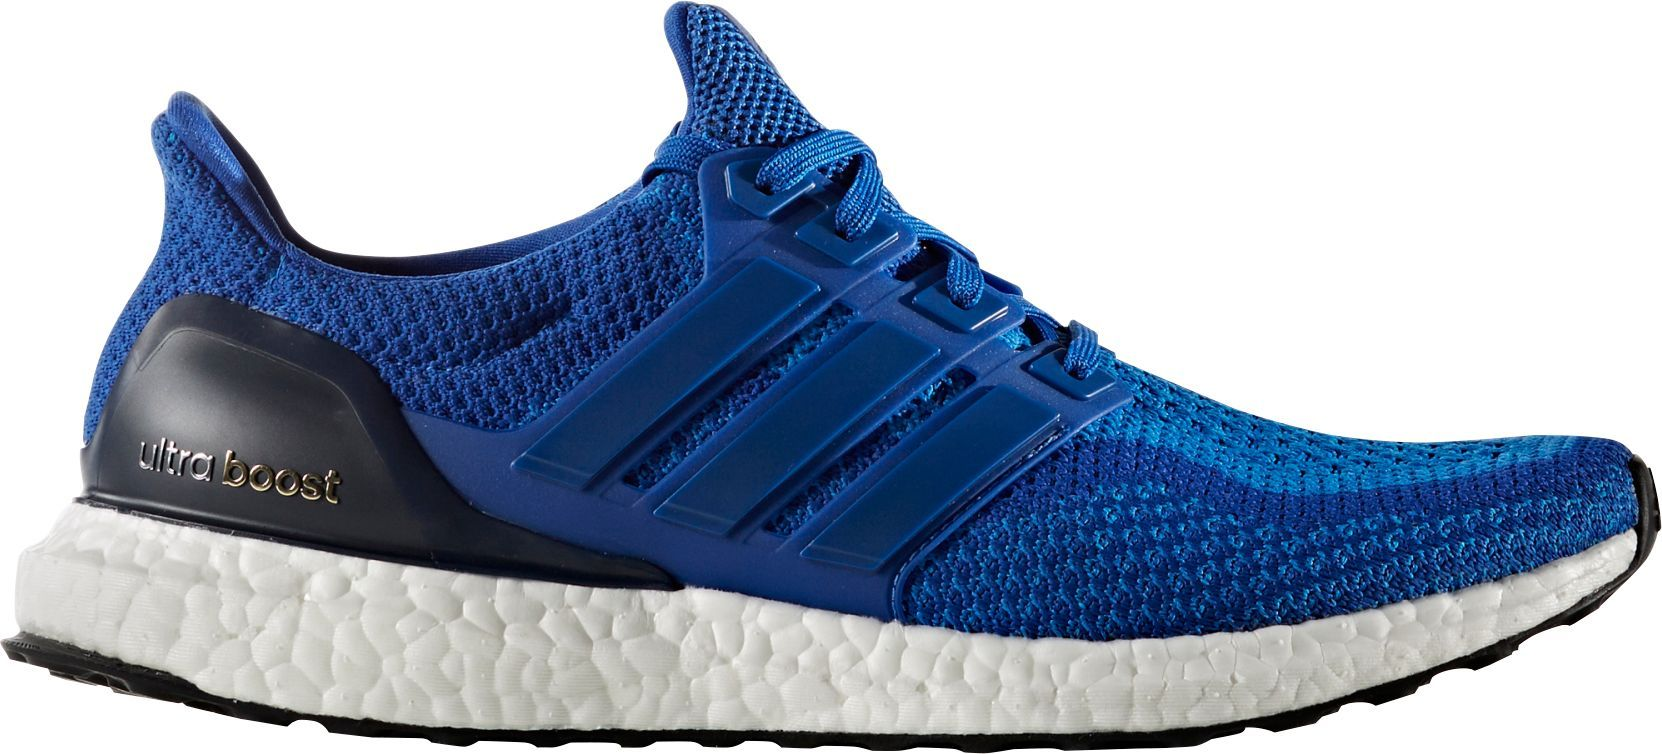 d7ade437597 adidas Men s Ultraboost Running Shoes in 2019